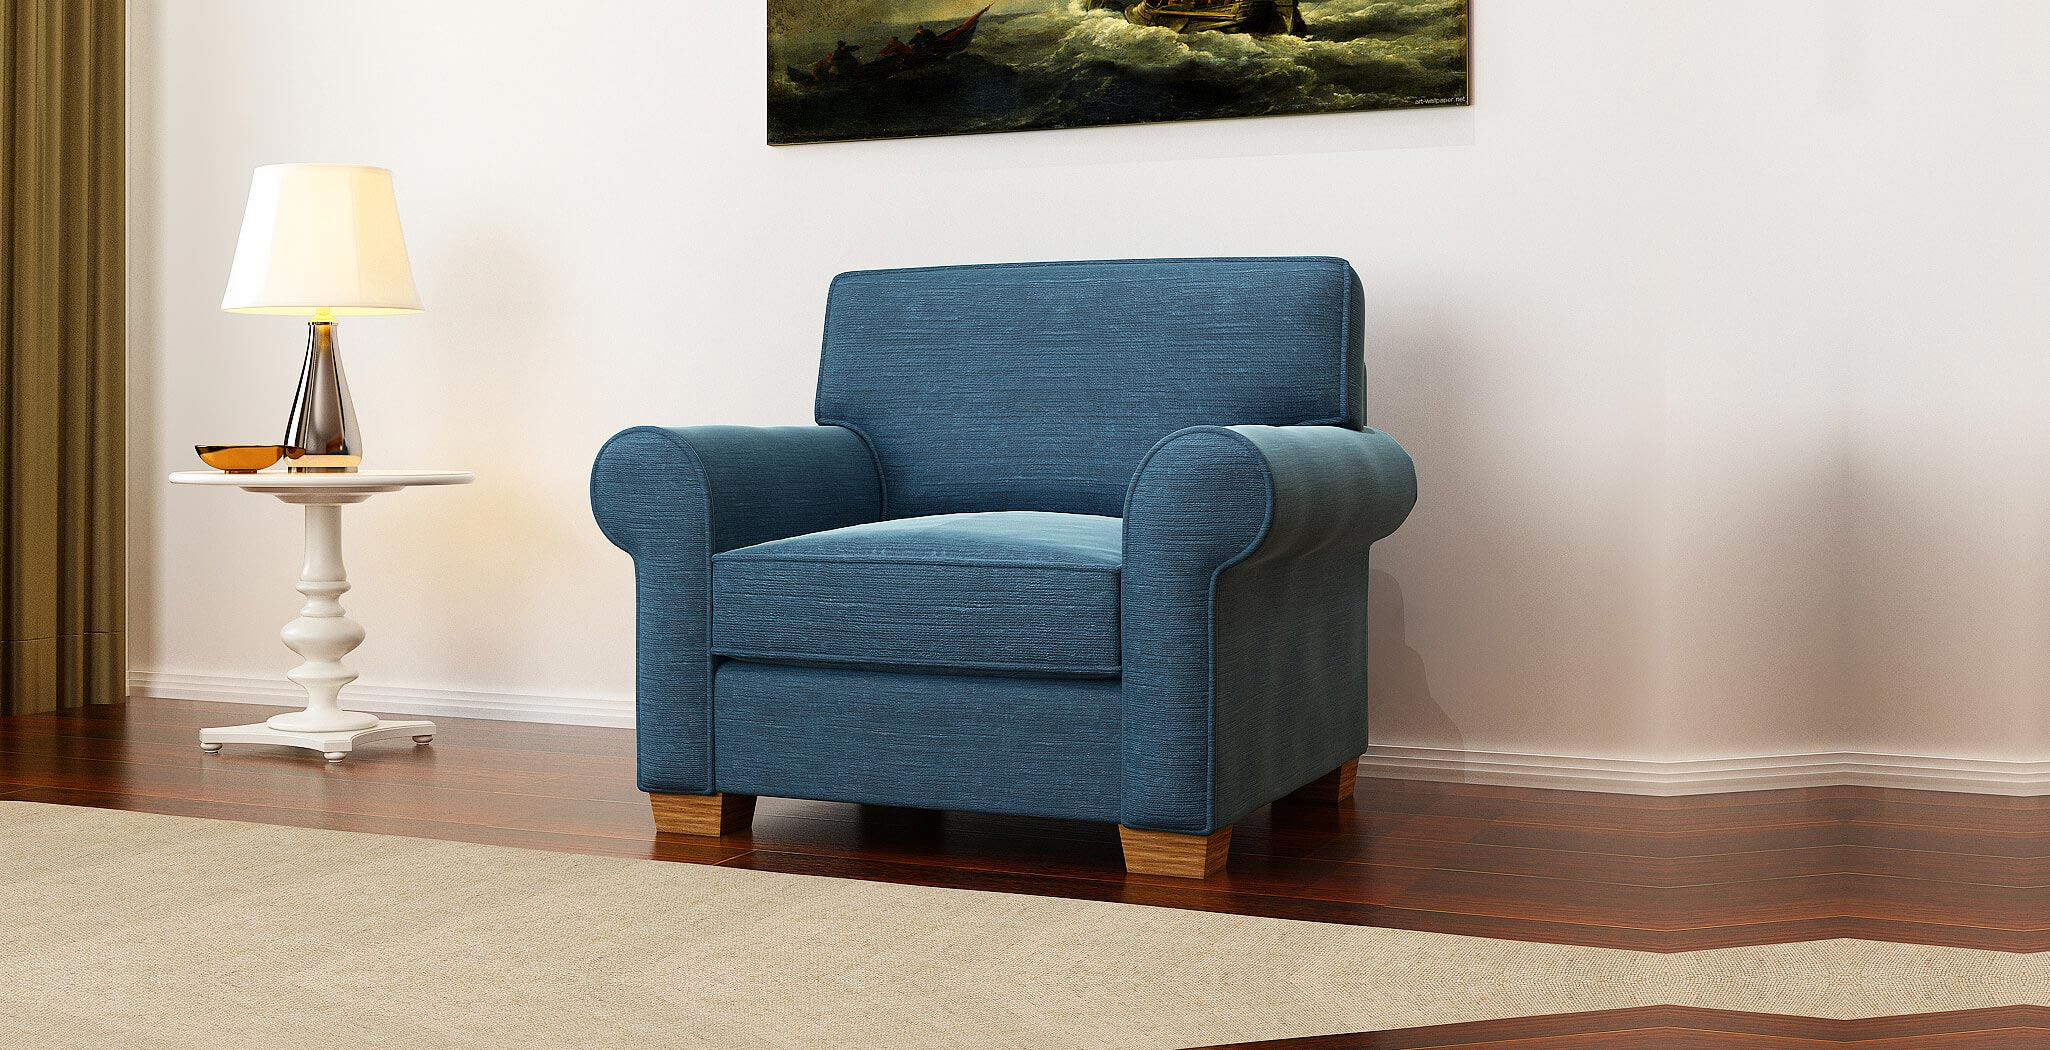 isabel chair furniture gallery 2